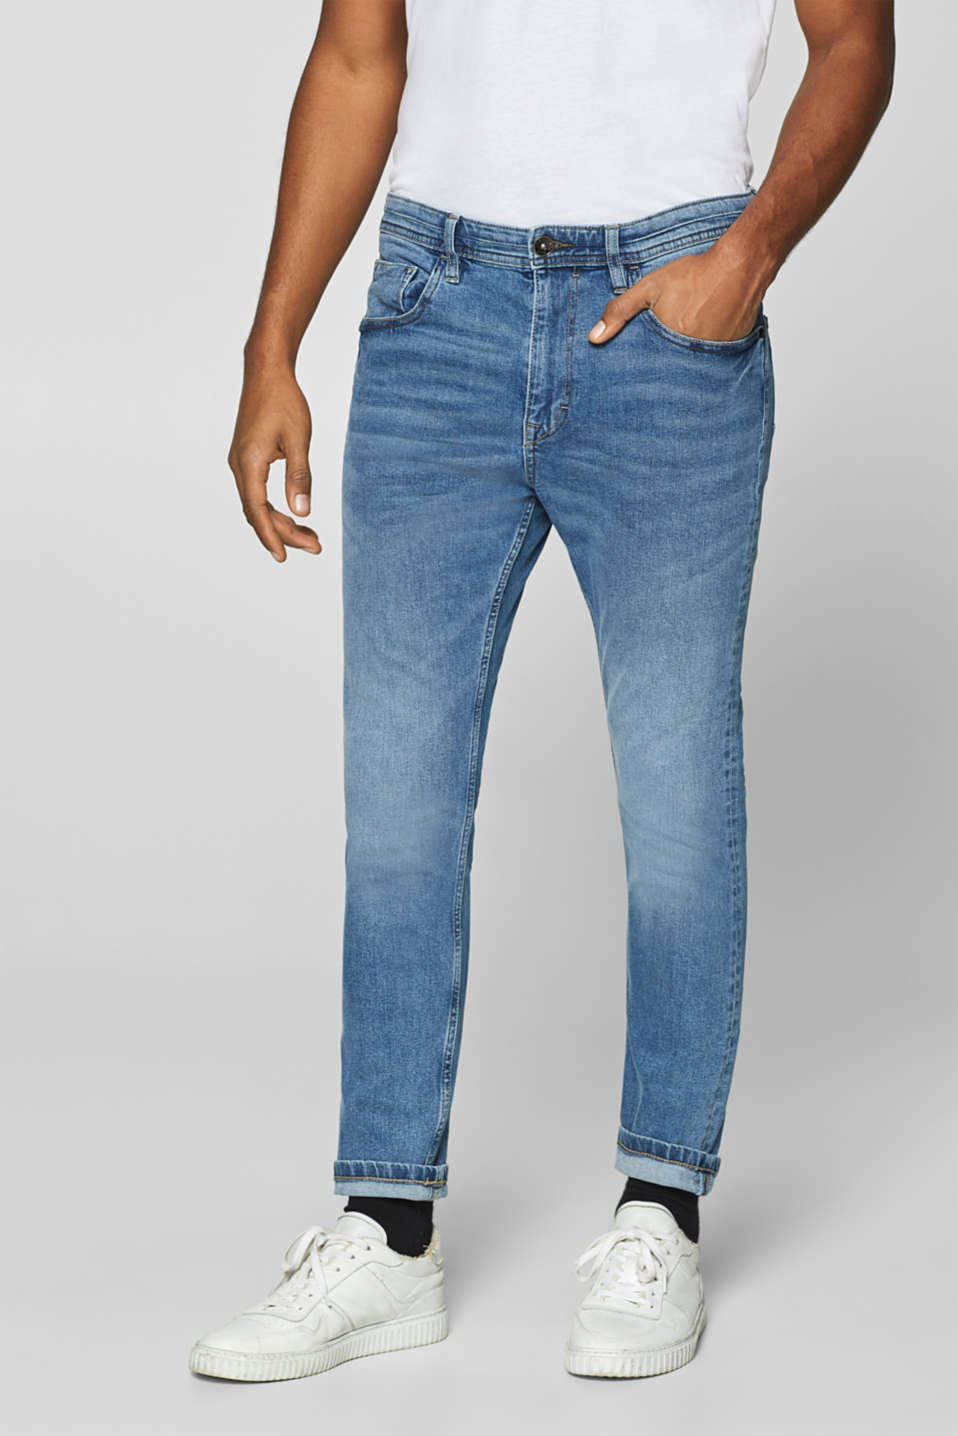 Esprit - Cropped stretch jeans with a vintage garment wash